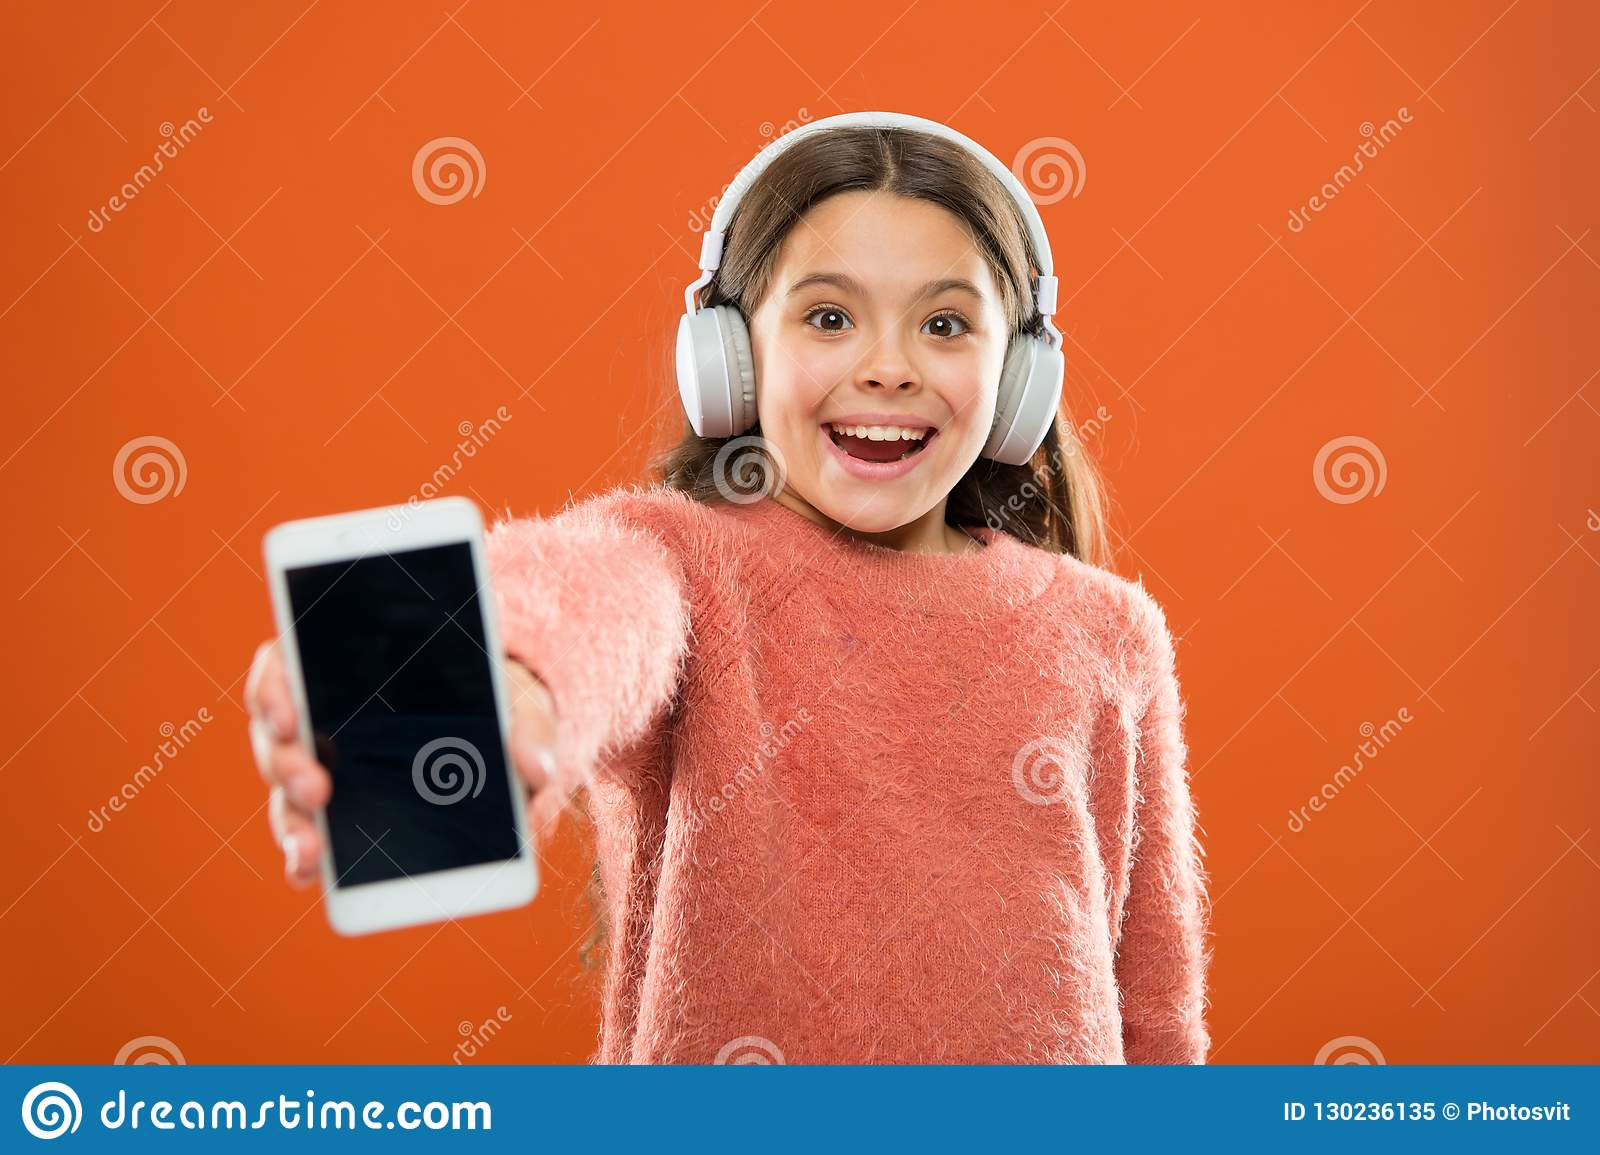 Get music family subscription. Access to millions of songs. Enjoy music concept. Best music apps that deserve a listen